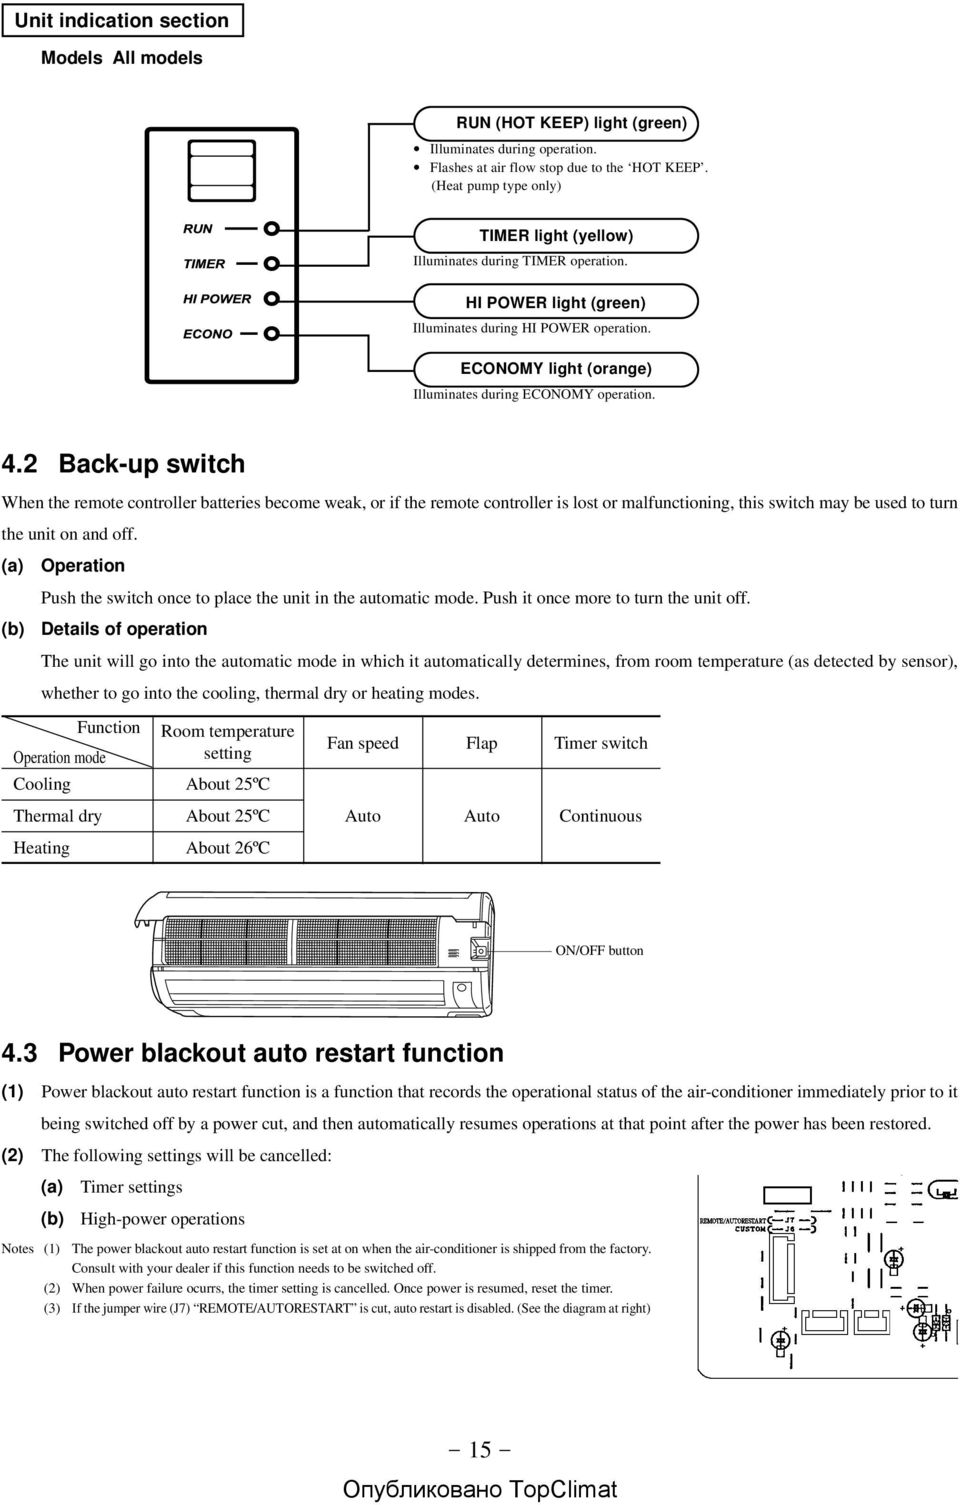 2 Back-up switch When the remote controller batteries become weak, or if the remote controller is lost or malfunctioning, this switch may be used to turn the unit on and off.